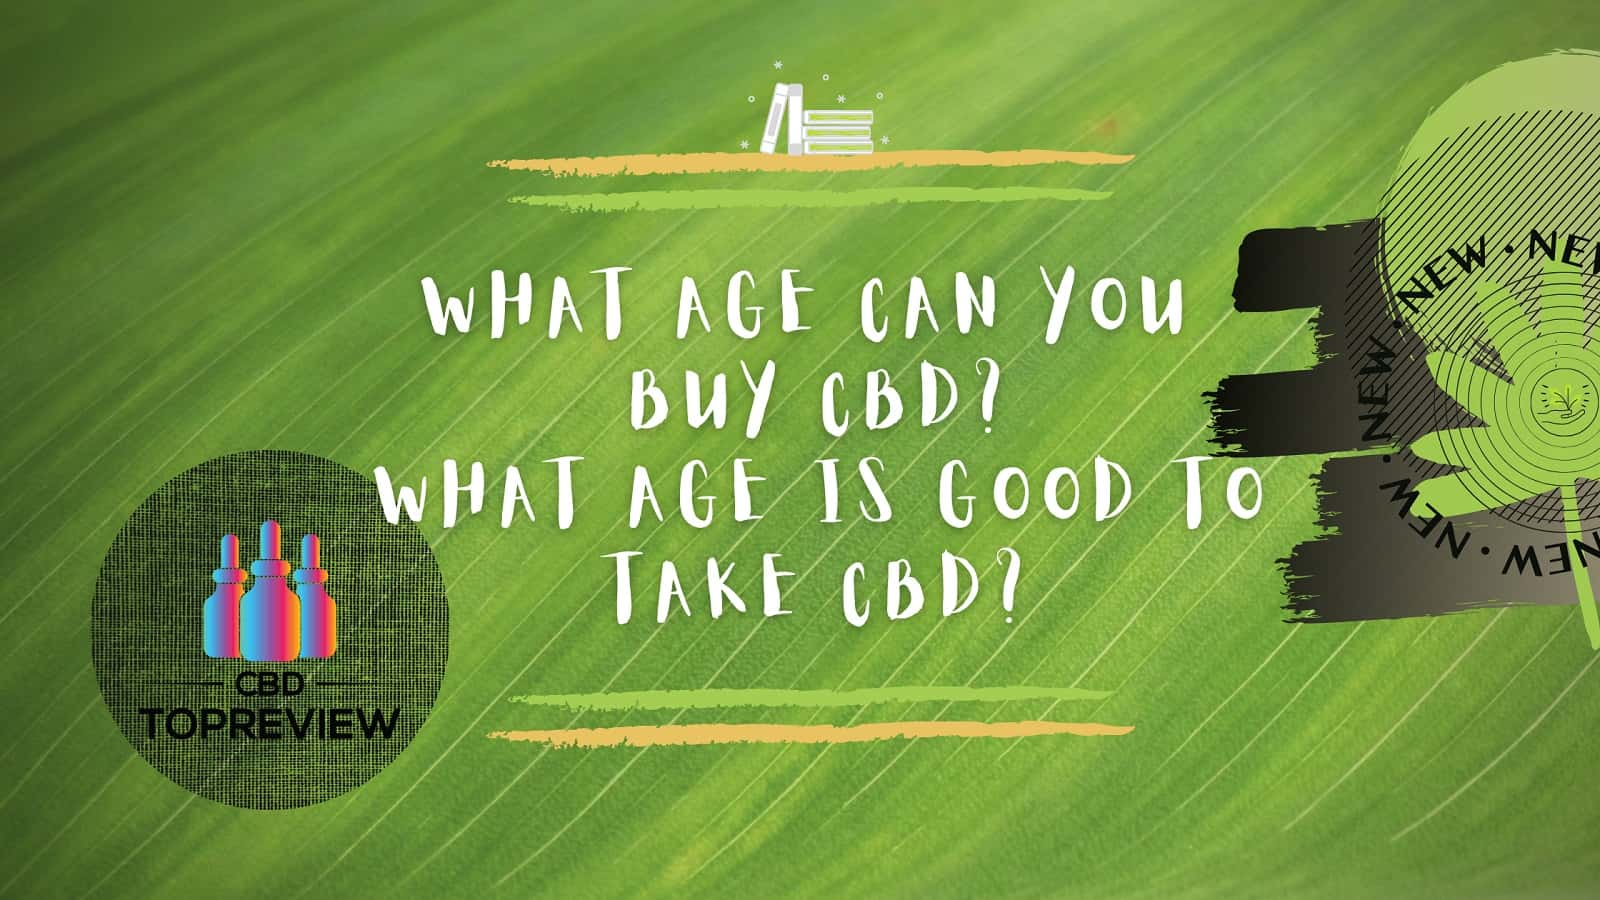 What age can you buy CBD